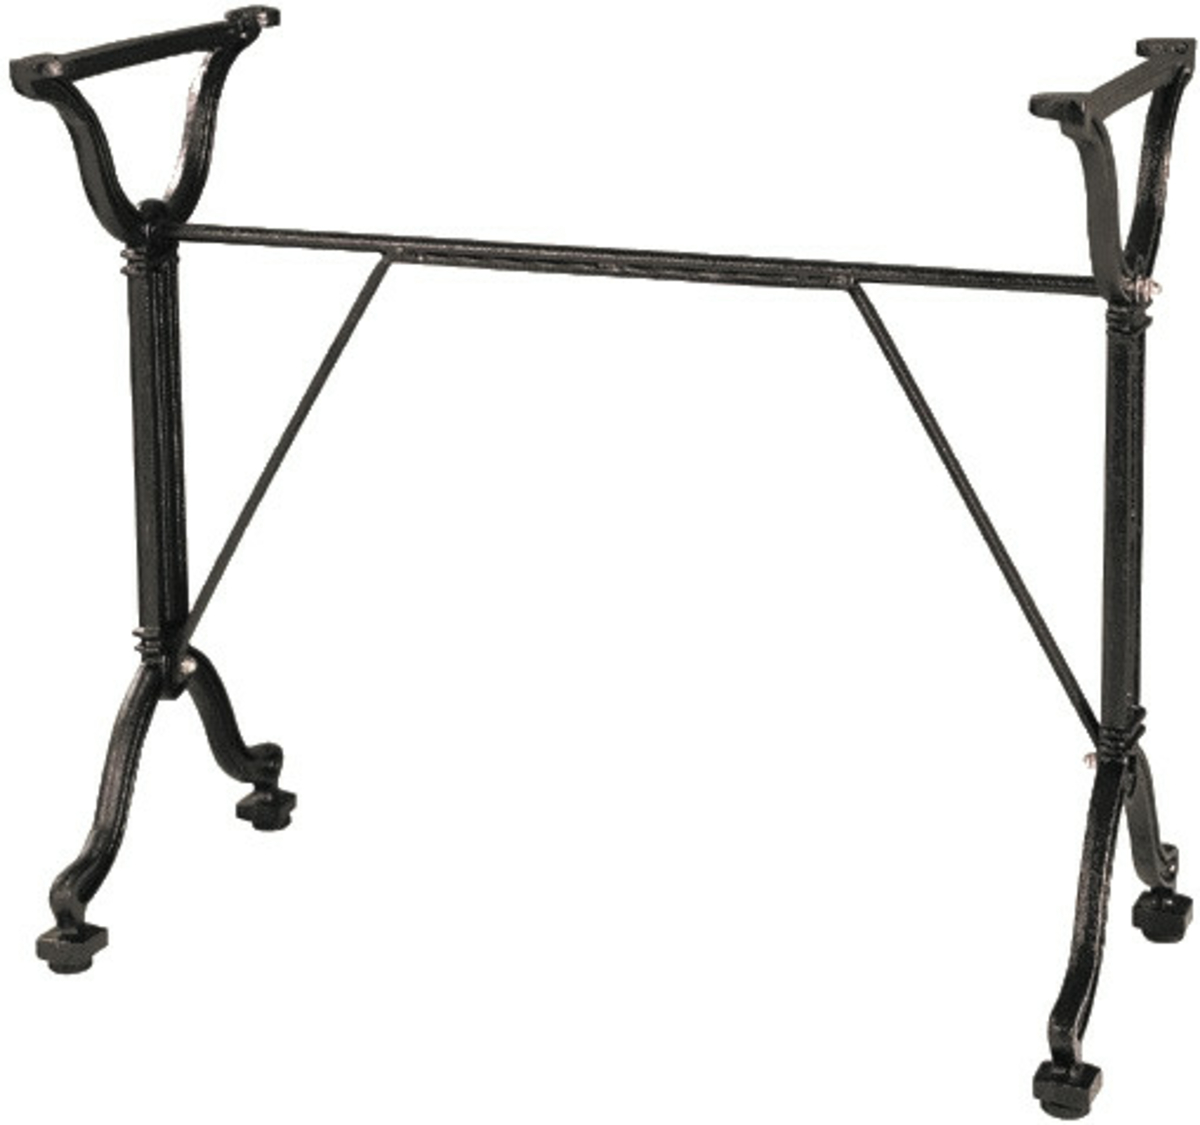 Pied de table noir 82x38 cm Retro